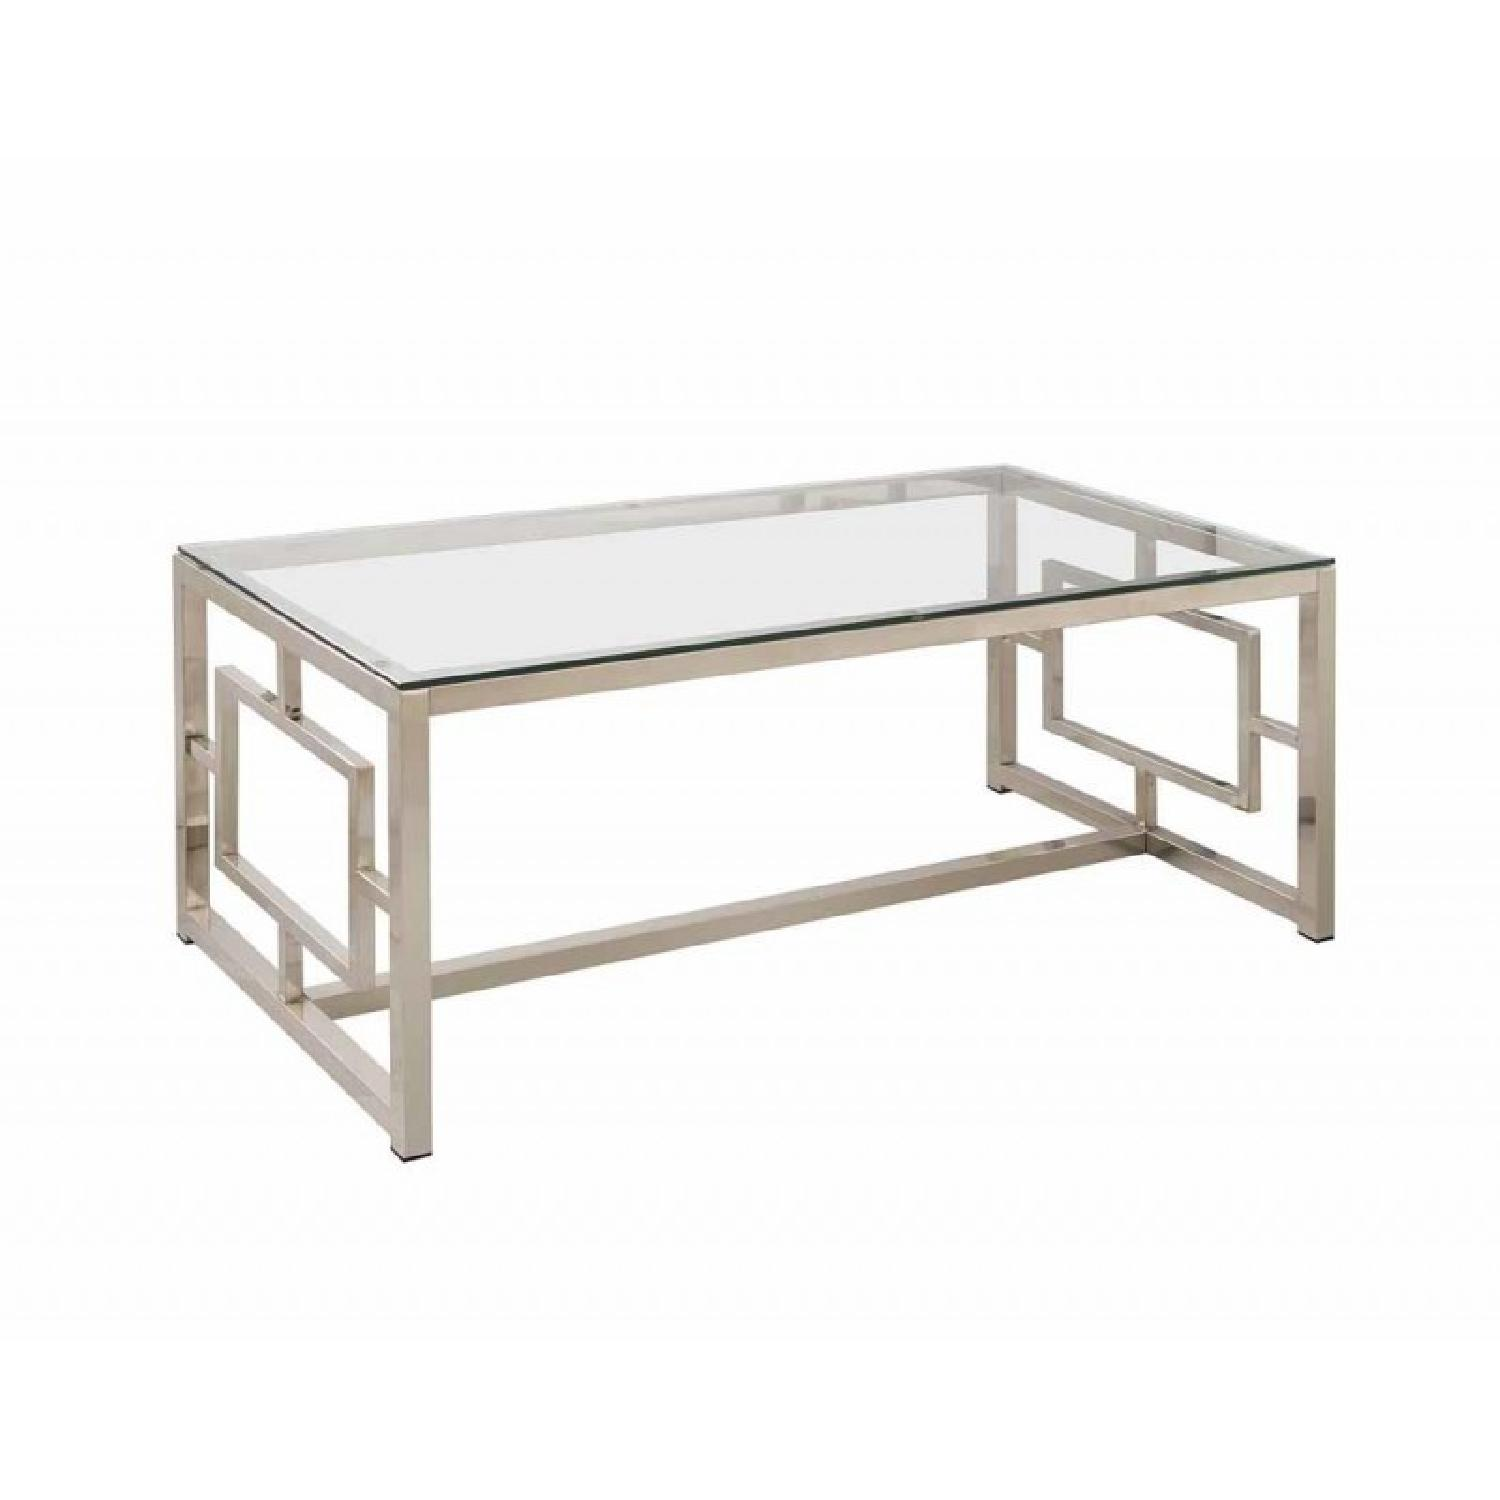 Contemporary Glass Coffee Table in Nickel Finish